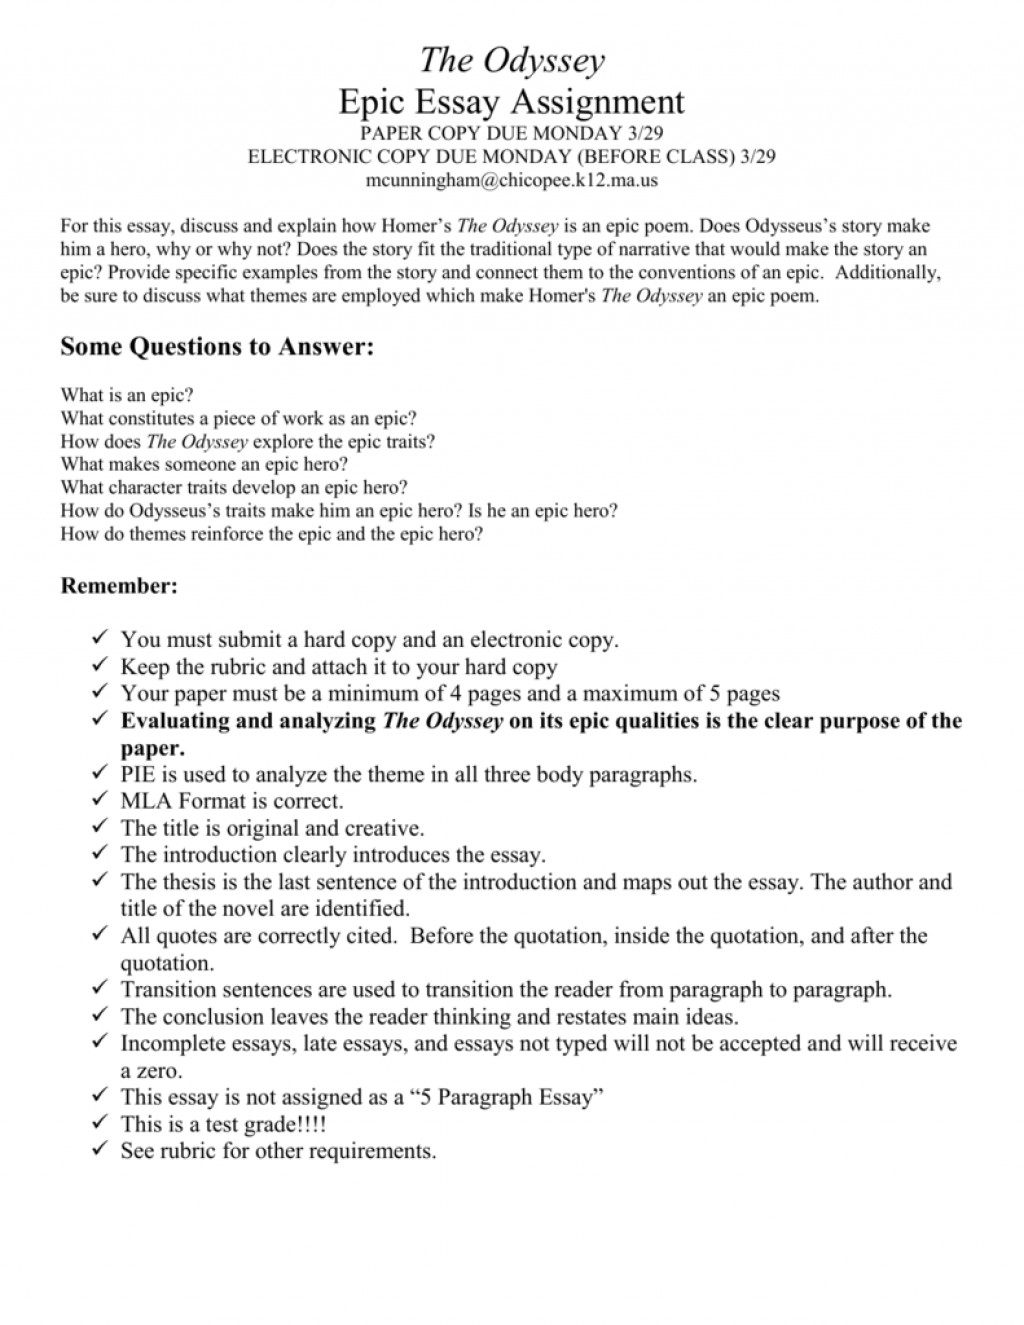 006 The Odyssey Essay Example 008040788 1 Excellent Thesis Hook Large